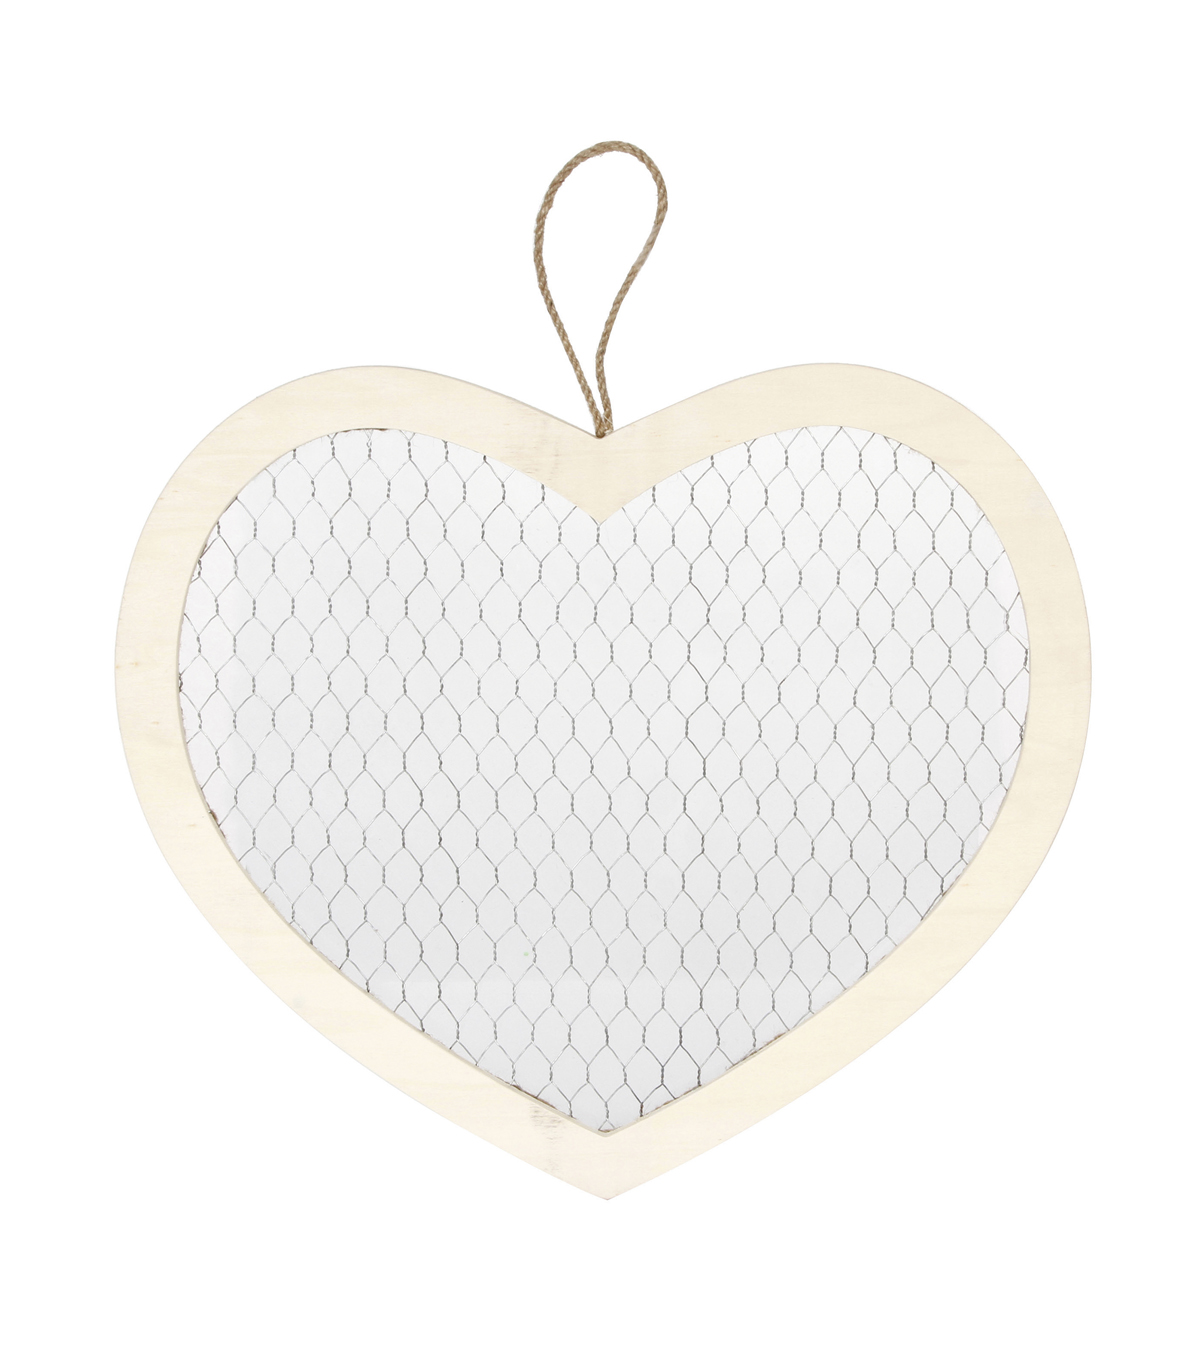 Darice Unfinished Wood Heart Frame with Chicken Wire